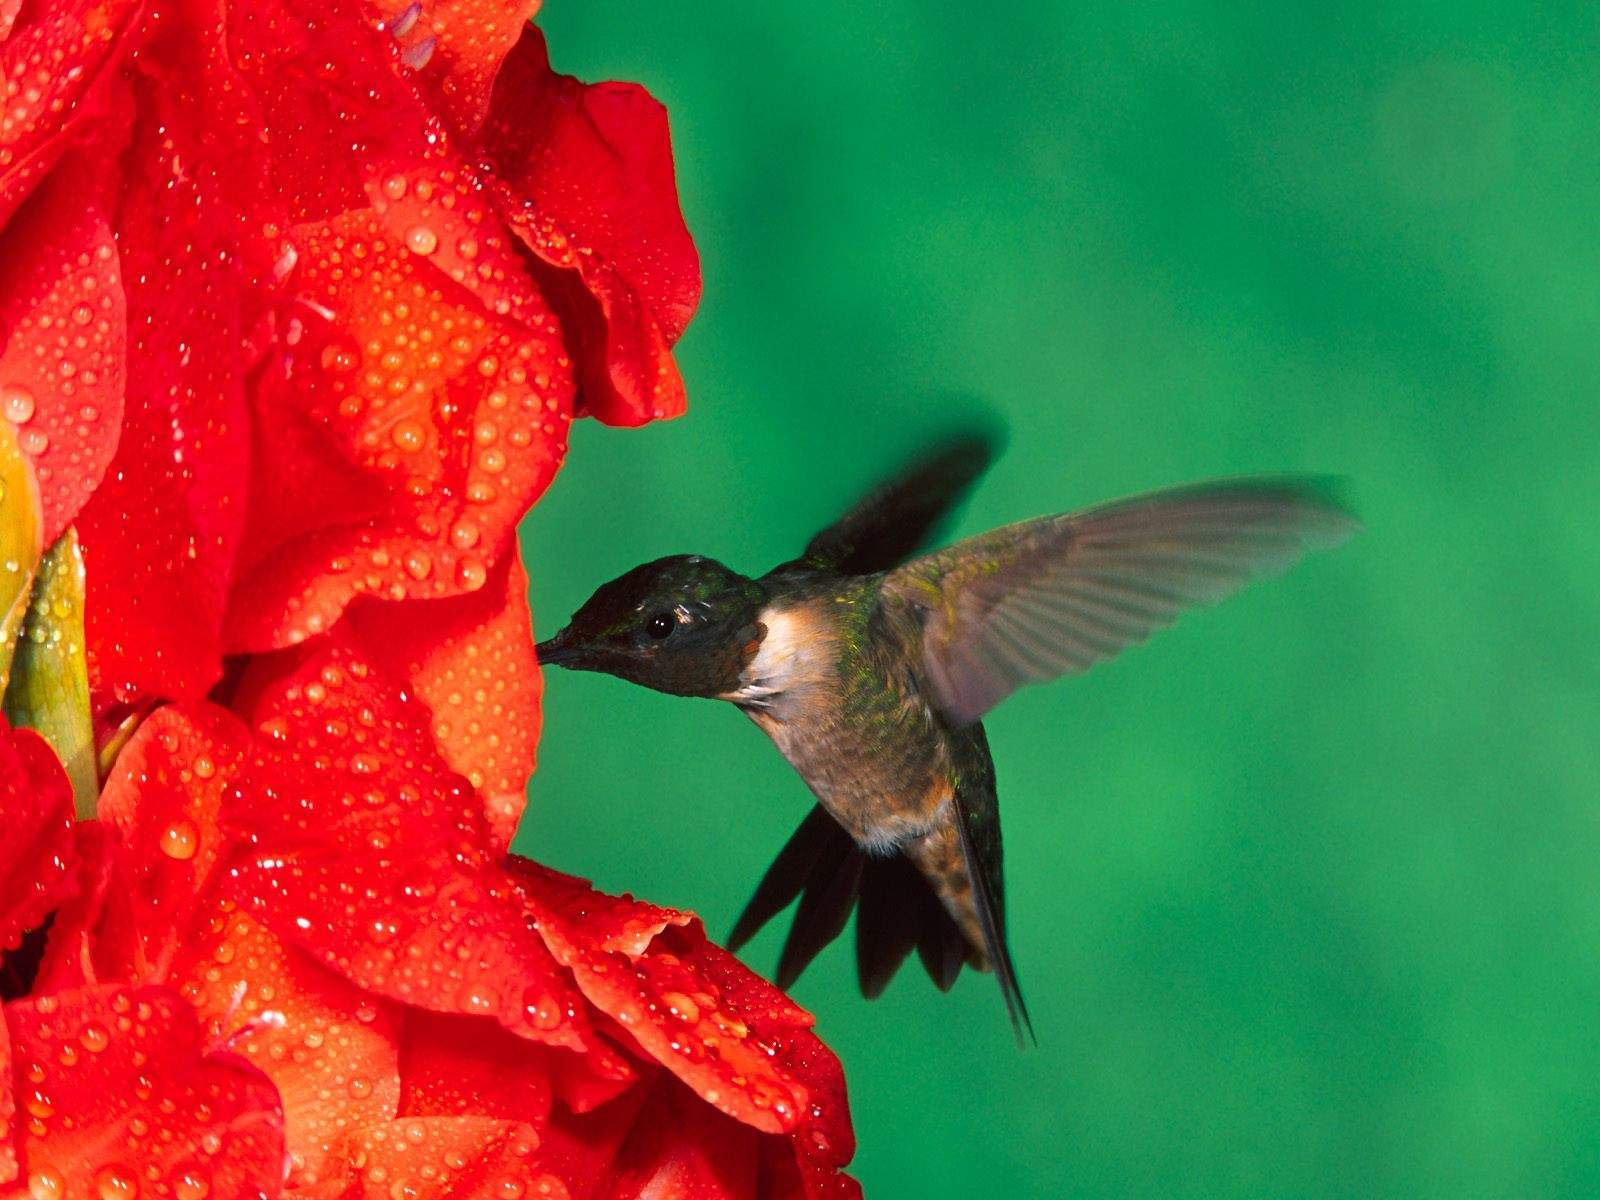 http://2.bp.blogspot.com/-ejgdWKOigmw/UP2T-PkEPgI/AAAAAAAACPg/gOqnI8JSbdU/s1600/Male+Ruby+Throated+Hummingbird+Wallpaper+HD.jpg